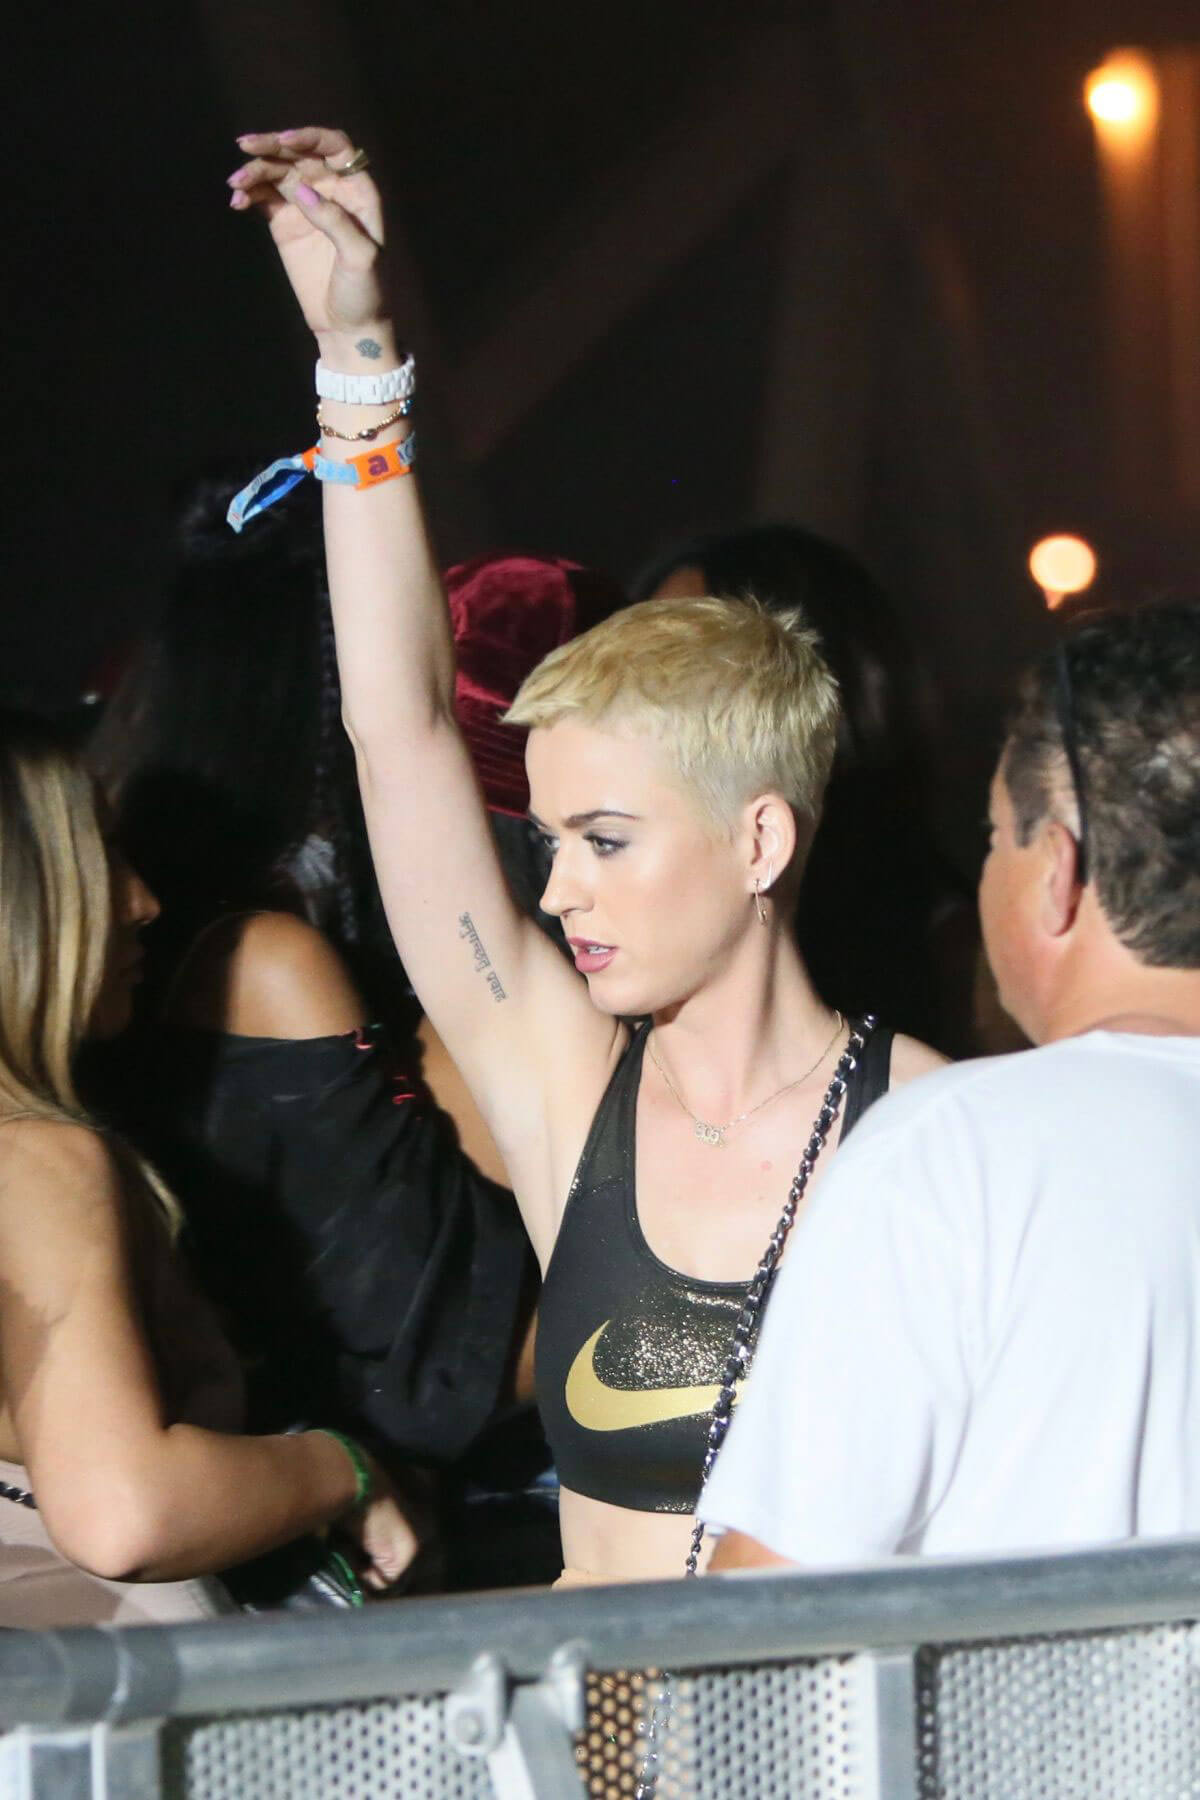 Katy Perry Stills at Coachella Valley Music and Arts Festival in Indio